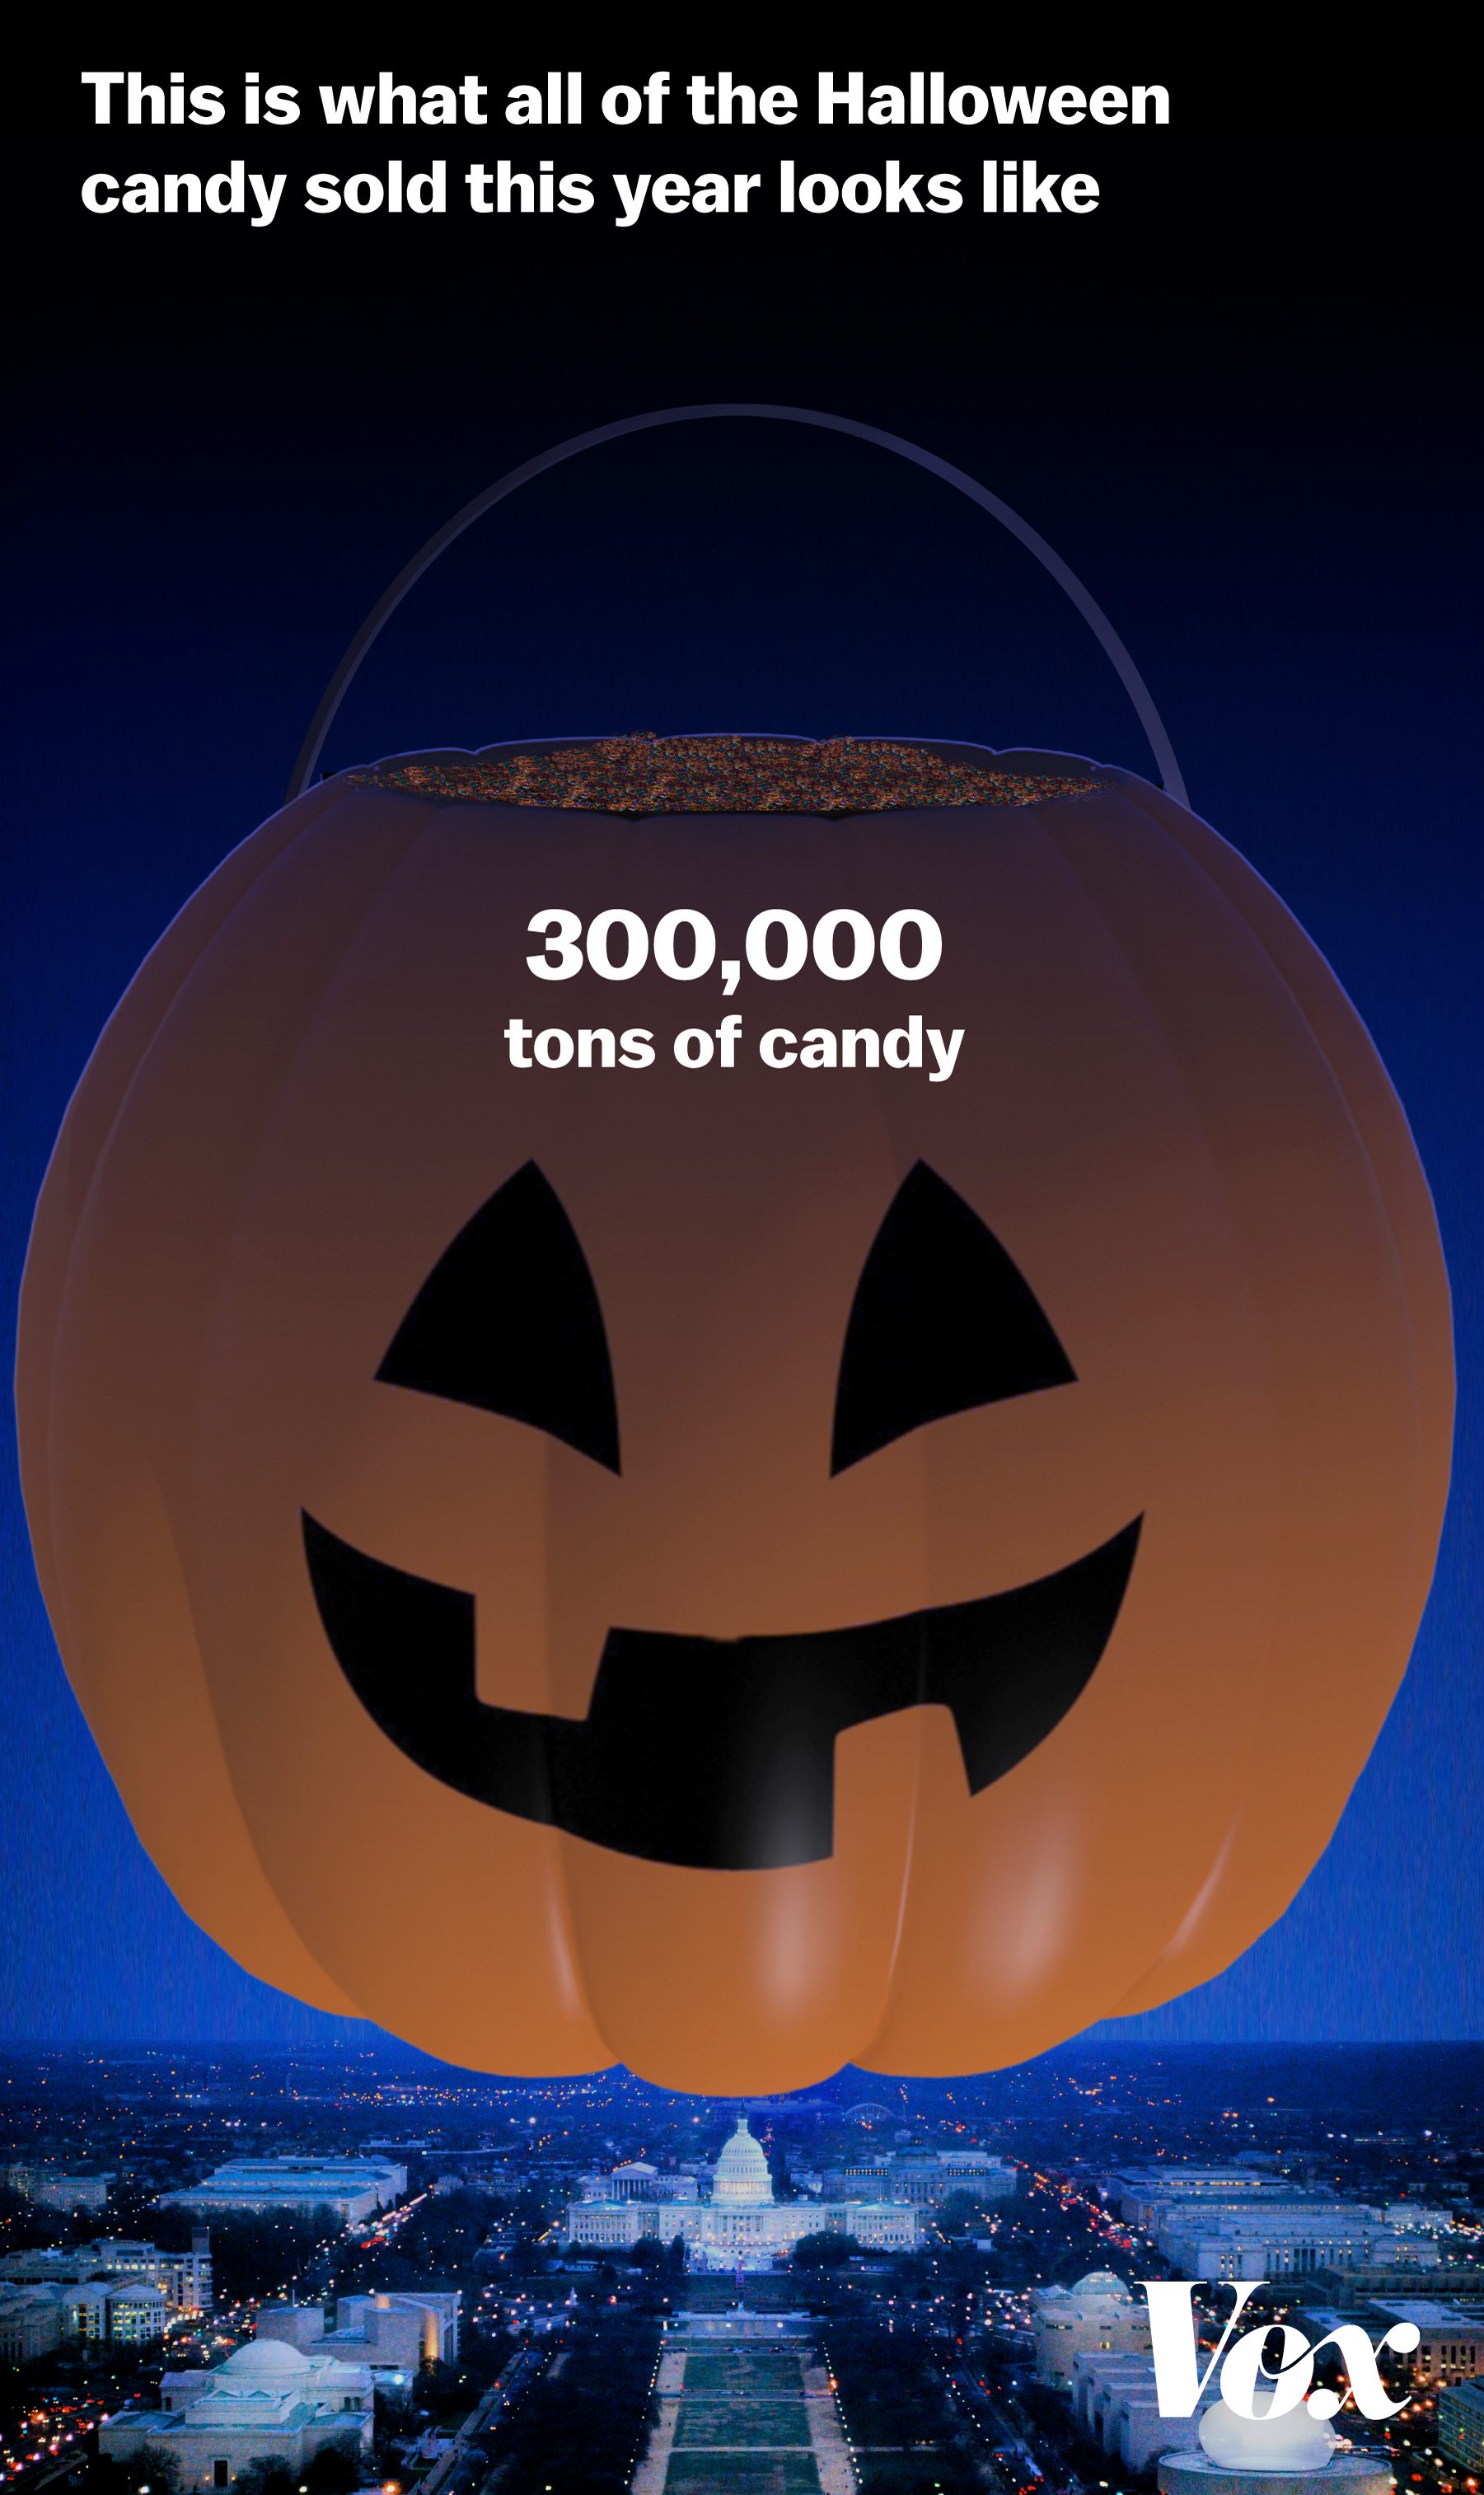 halloween candy sales are expected to bring in $9 billion in 2018 - vox